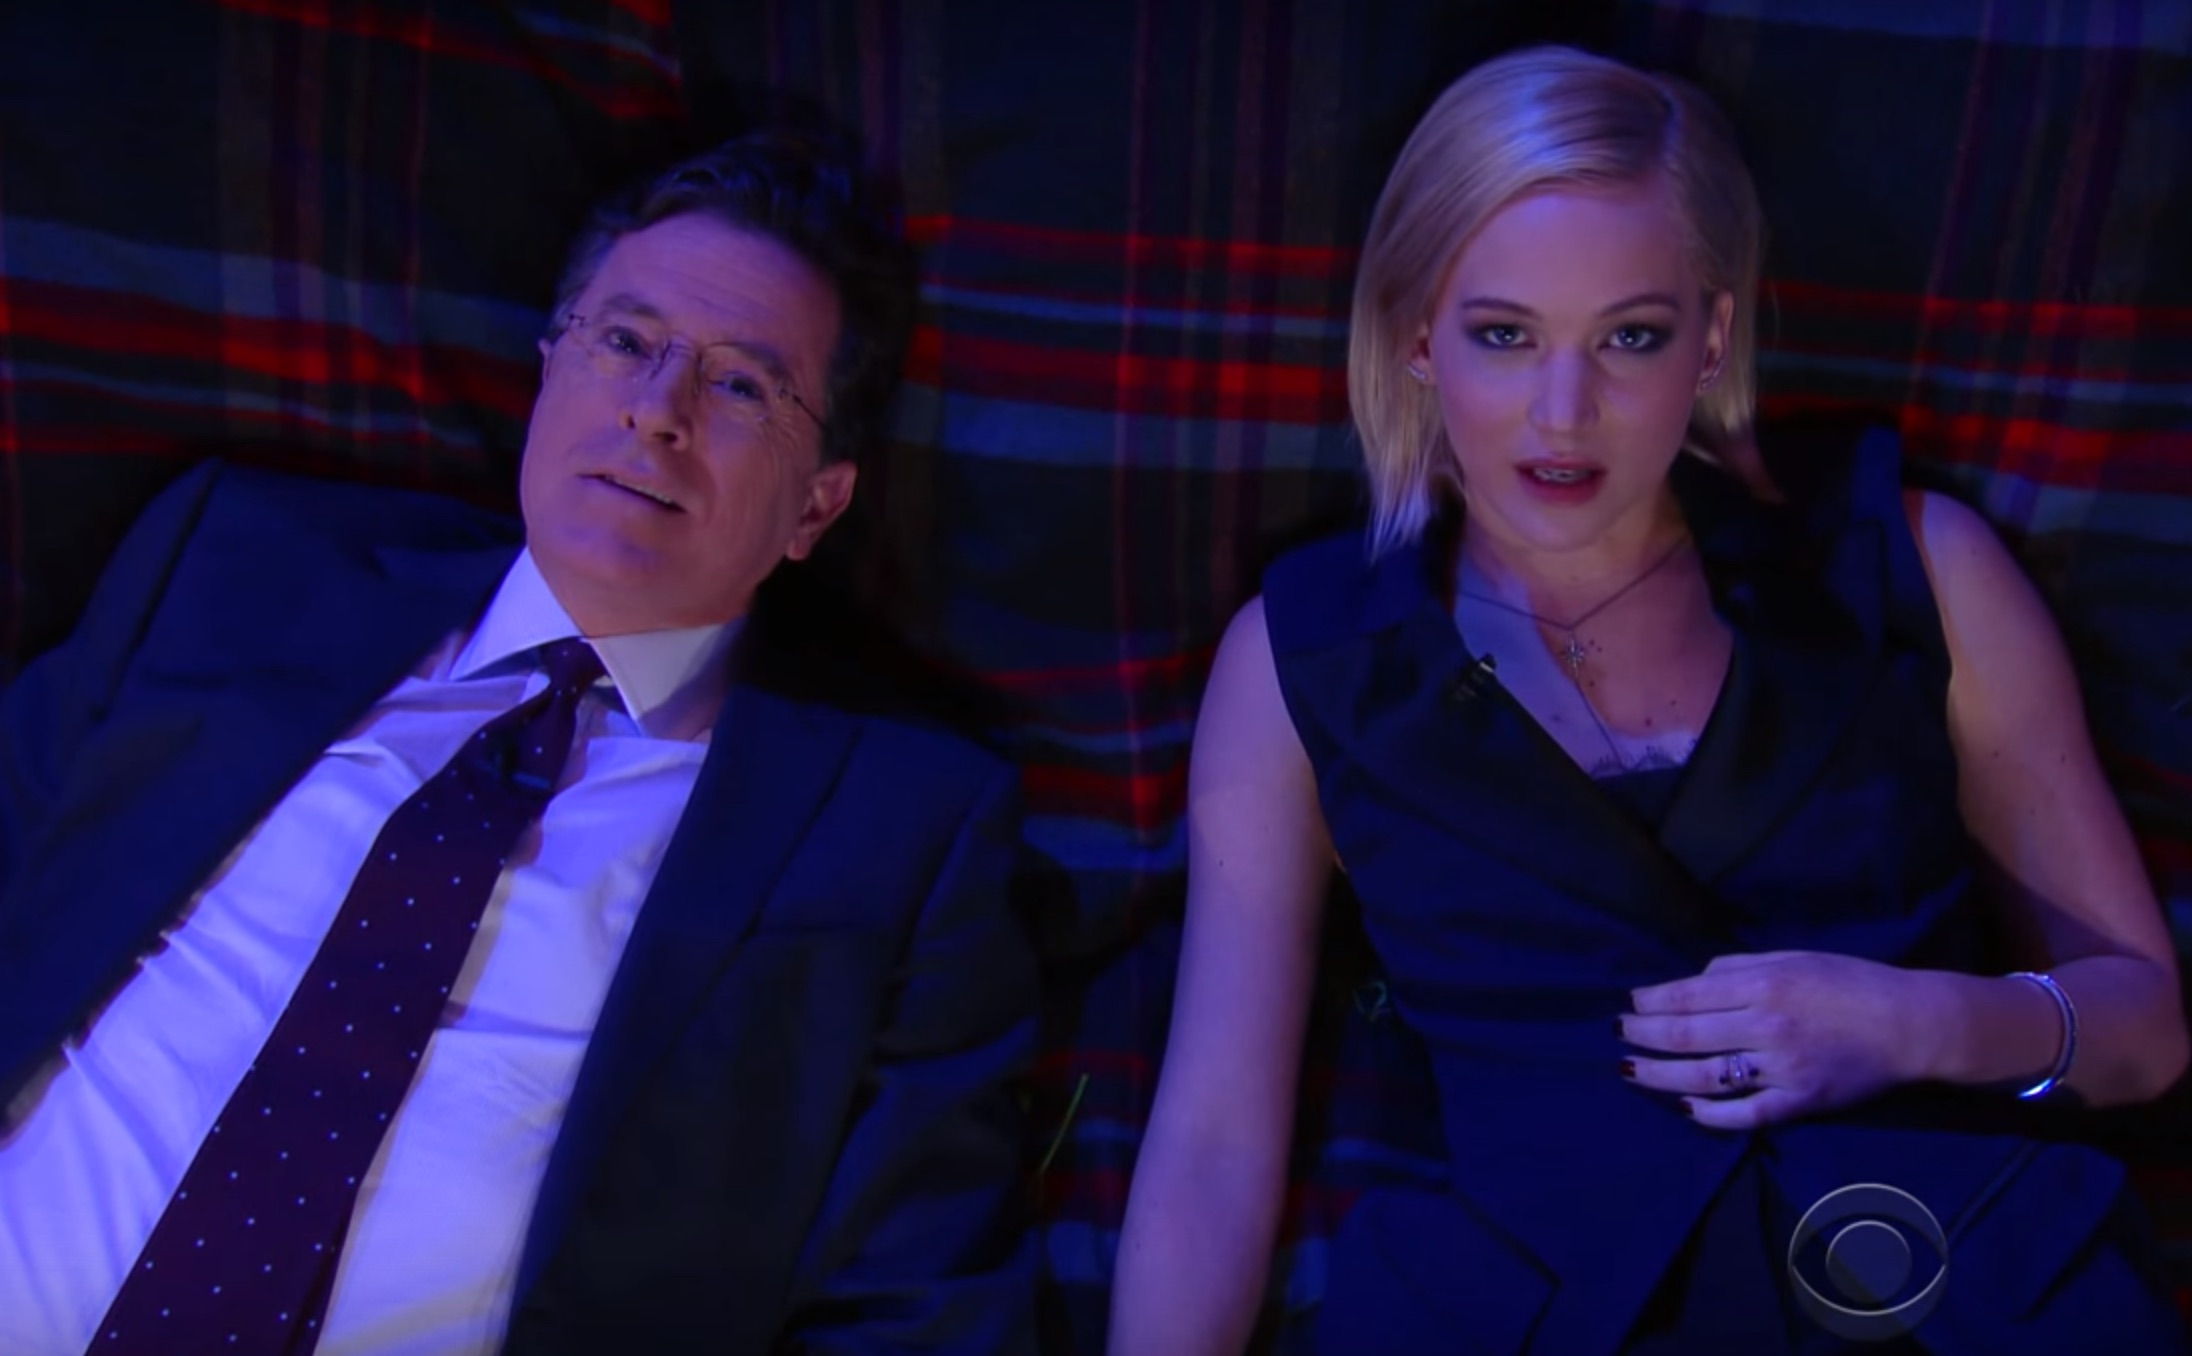 Jennifer Lawrence and Stephen Colbert asked each other deep questions under the stars